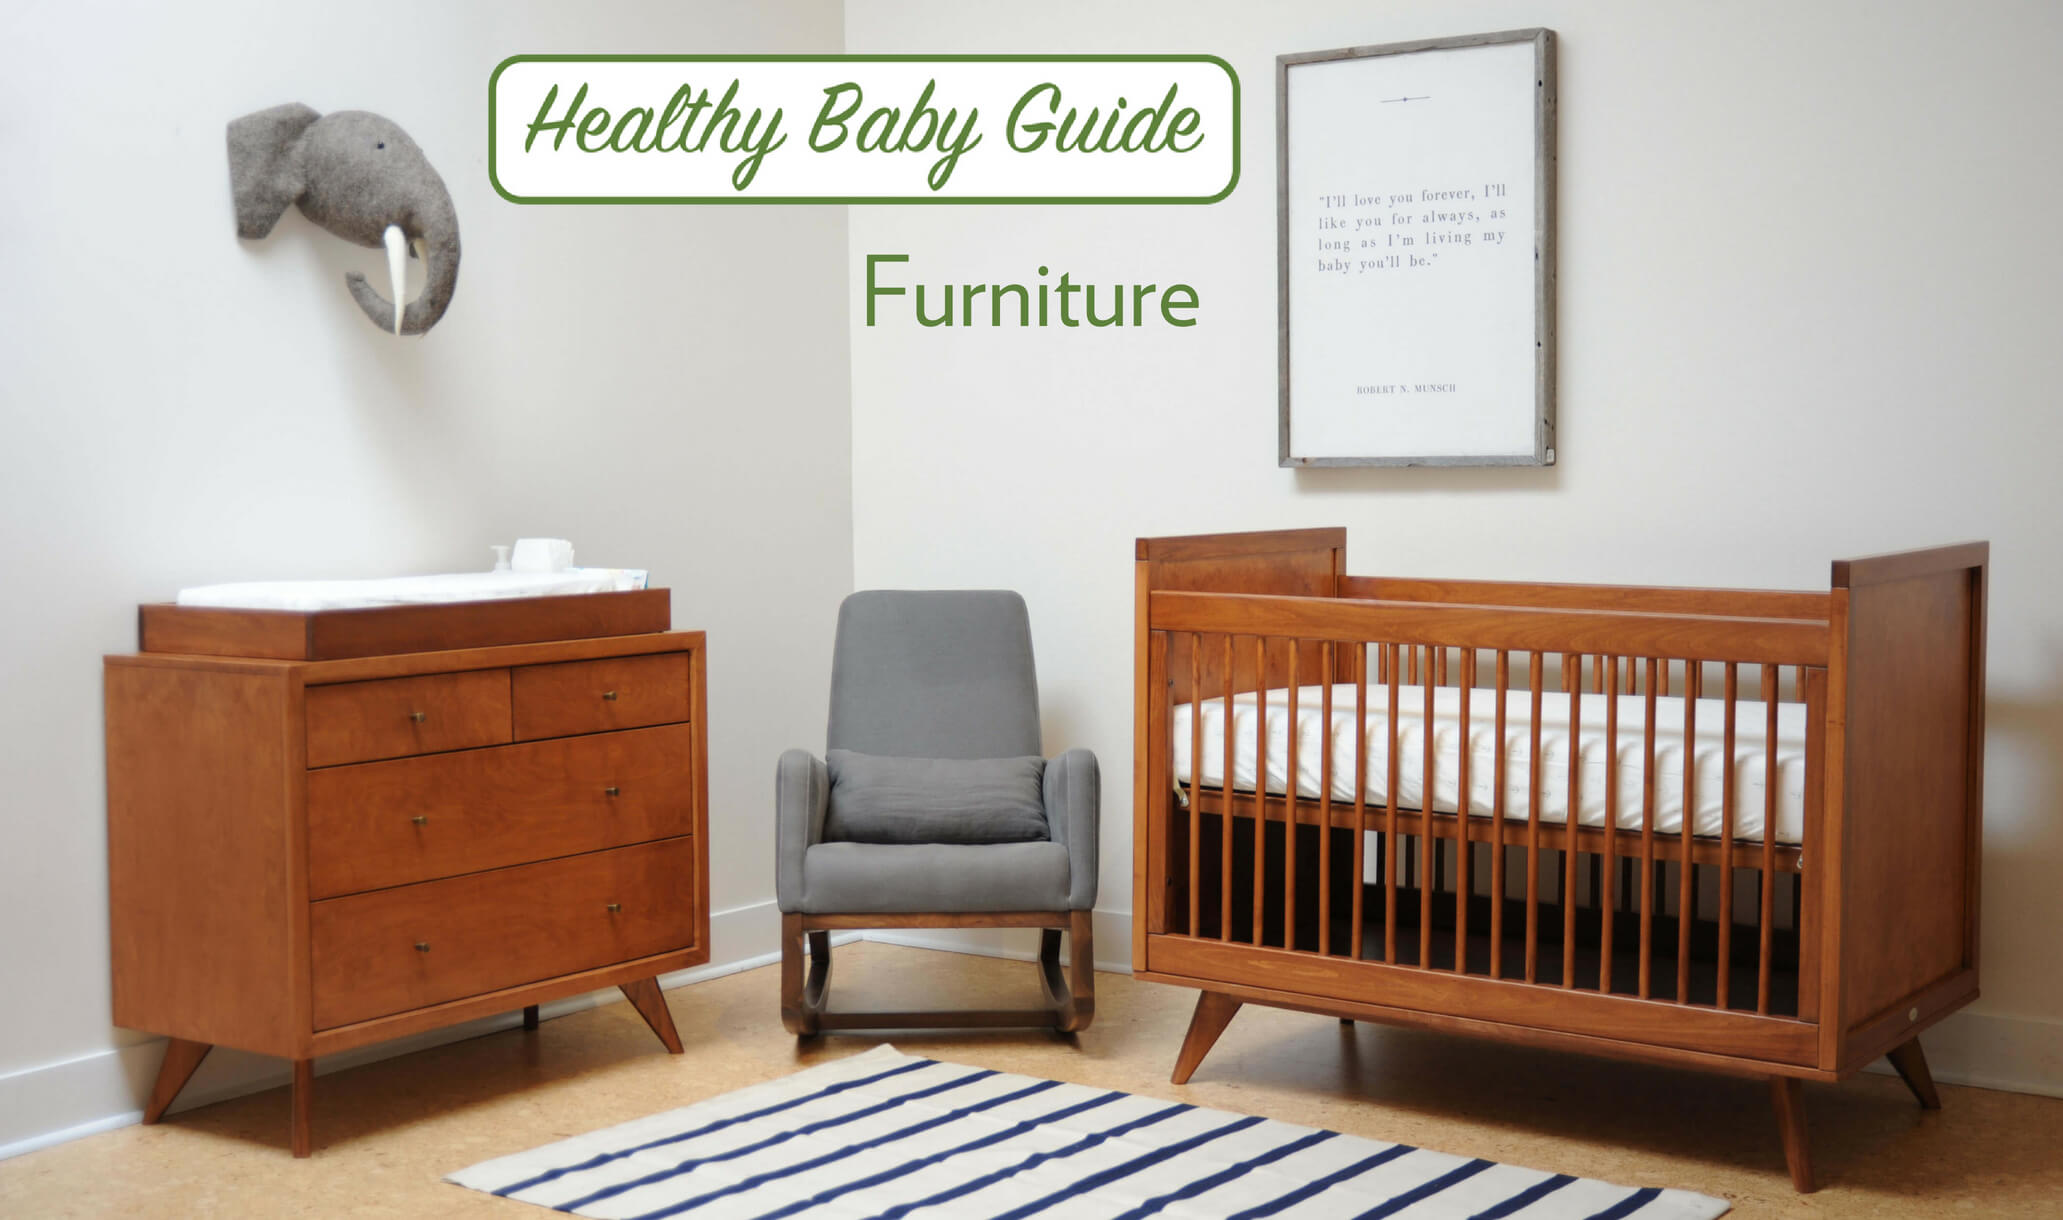 Genial Healthy Baby Guide To Furniture